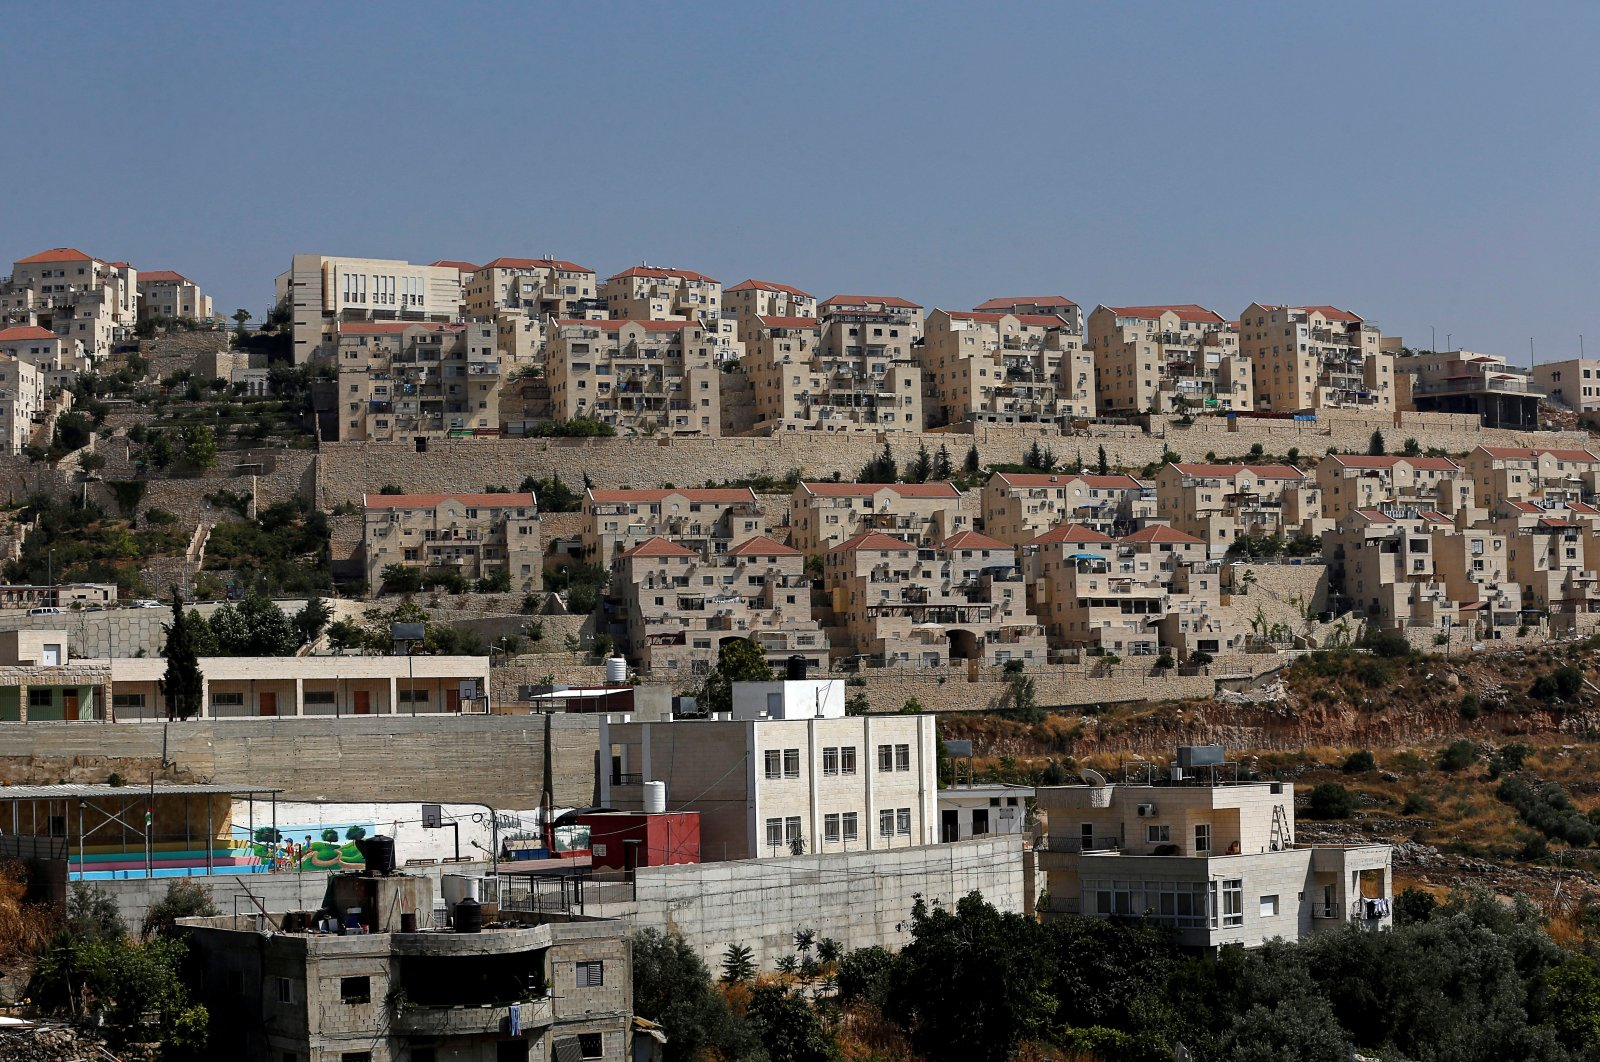 Palestinian houses in the village of Wadi Fukin, as the Jewish settlement of Beitar Illit is seen in the background in the Israeli-occupied West Bank, June 23, 2019.  (REUTERS Photo)